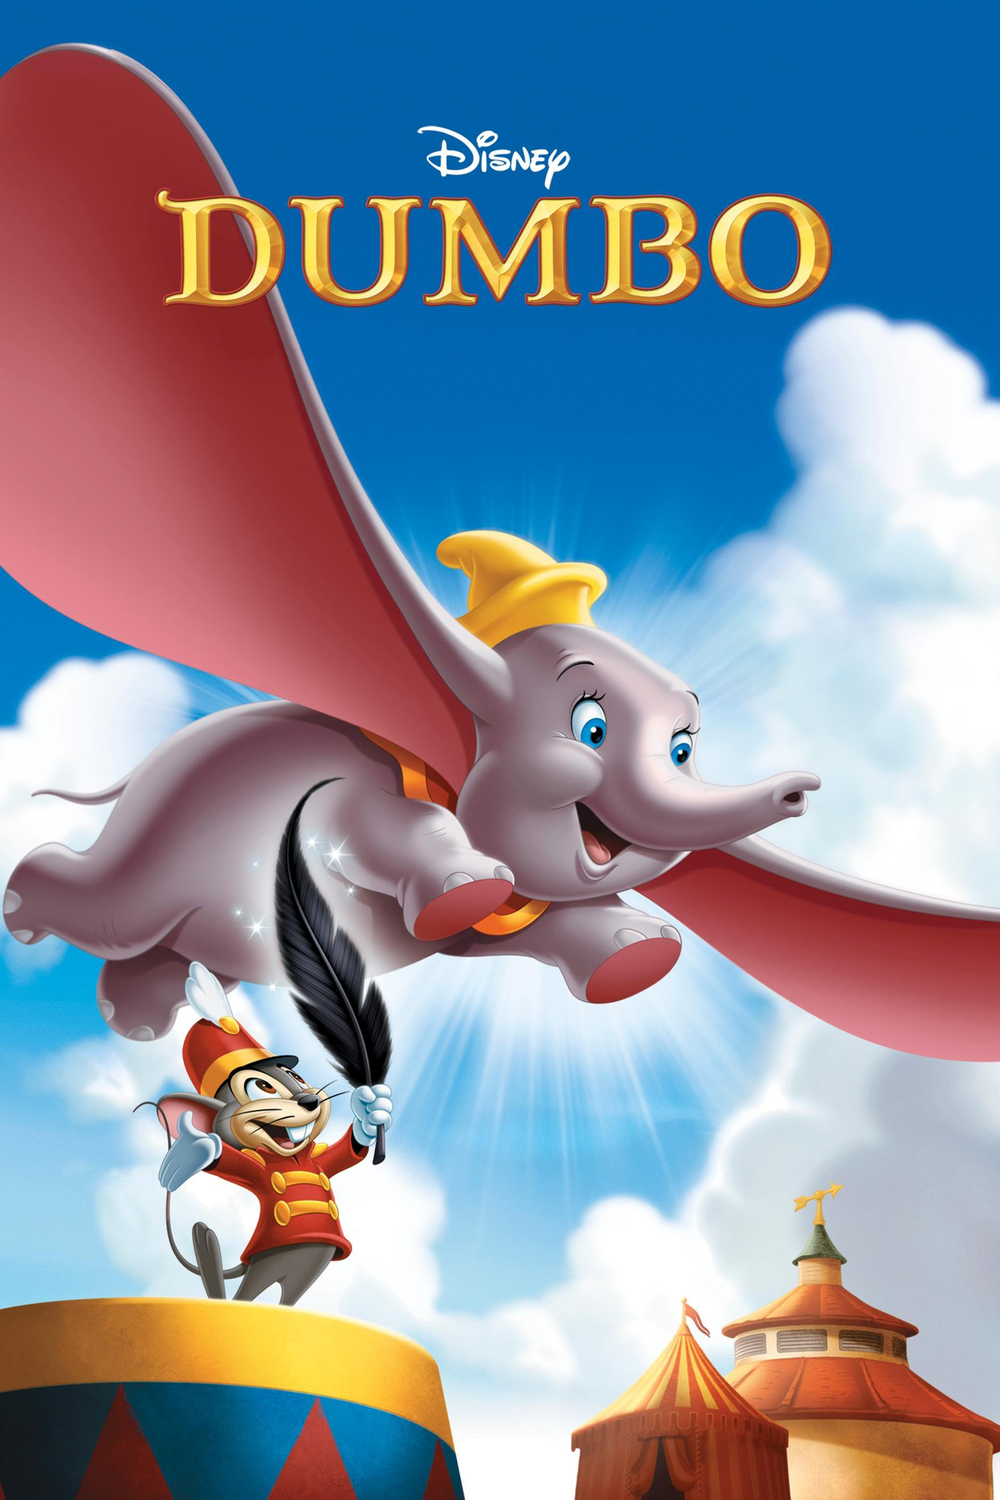 Dumbo (1941) - Directed by: Samuel ArmstrongStarring: Sterling Holloway, Edward BrophyRated: GRunning Time: 1h 4mTMM Score:2 stars out of 5 (didn't like it)STRENGTHS: Good for its dayWEAKNESSES: It's not 1941 anymore